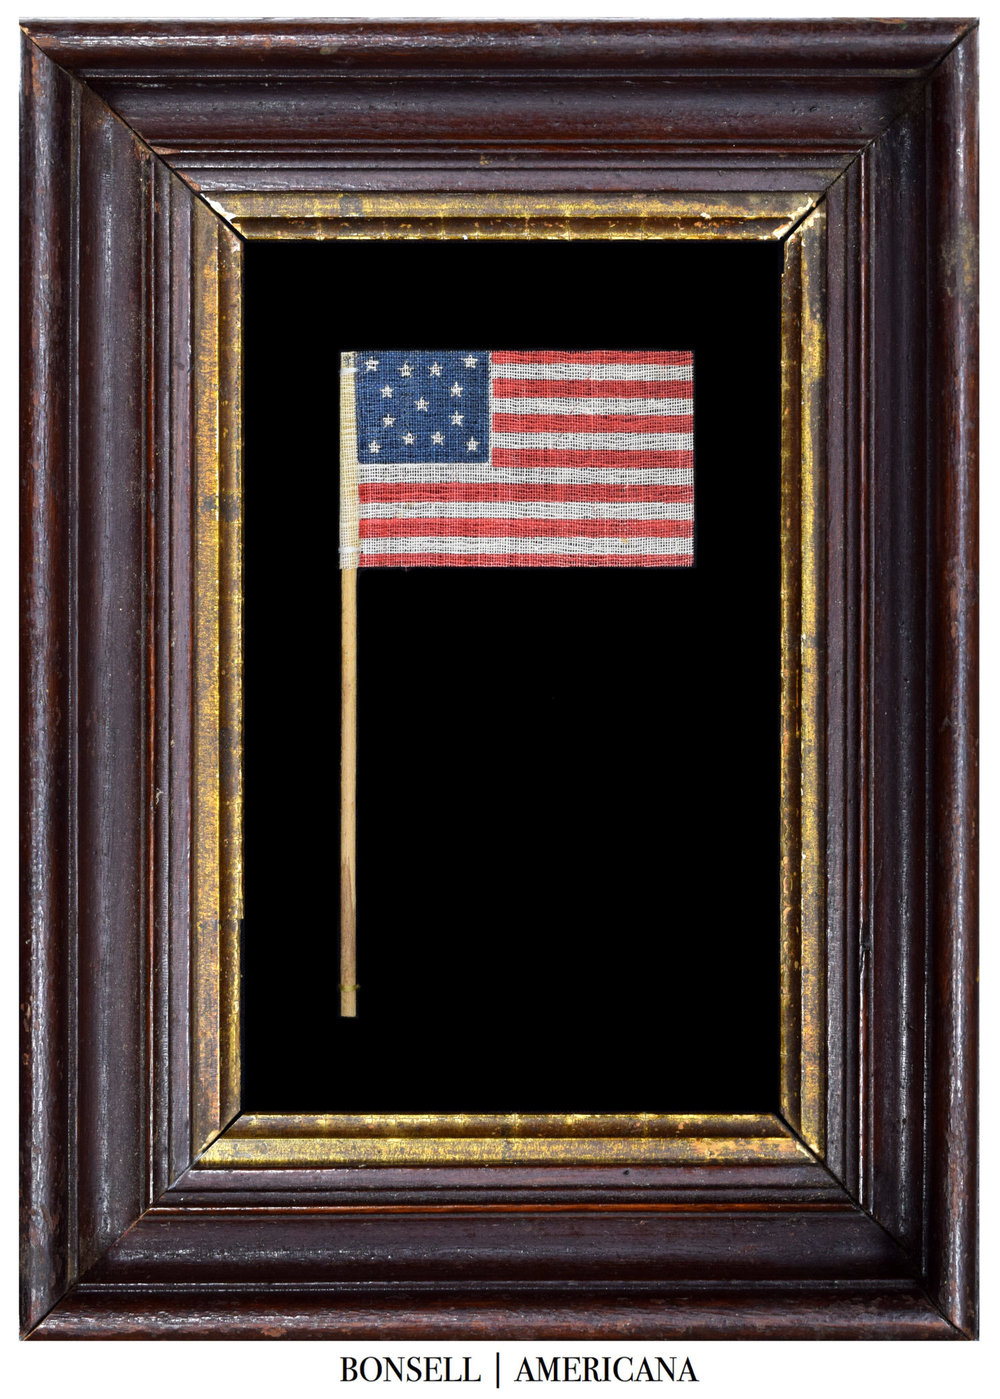 13 Star Antique Parade Flag